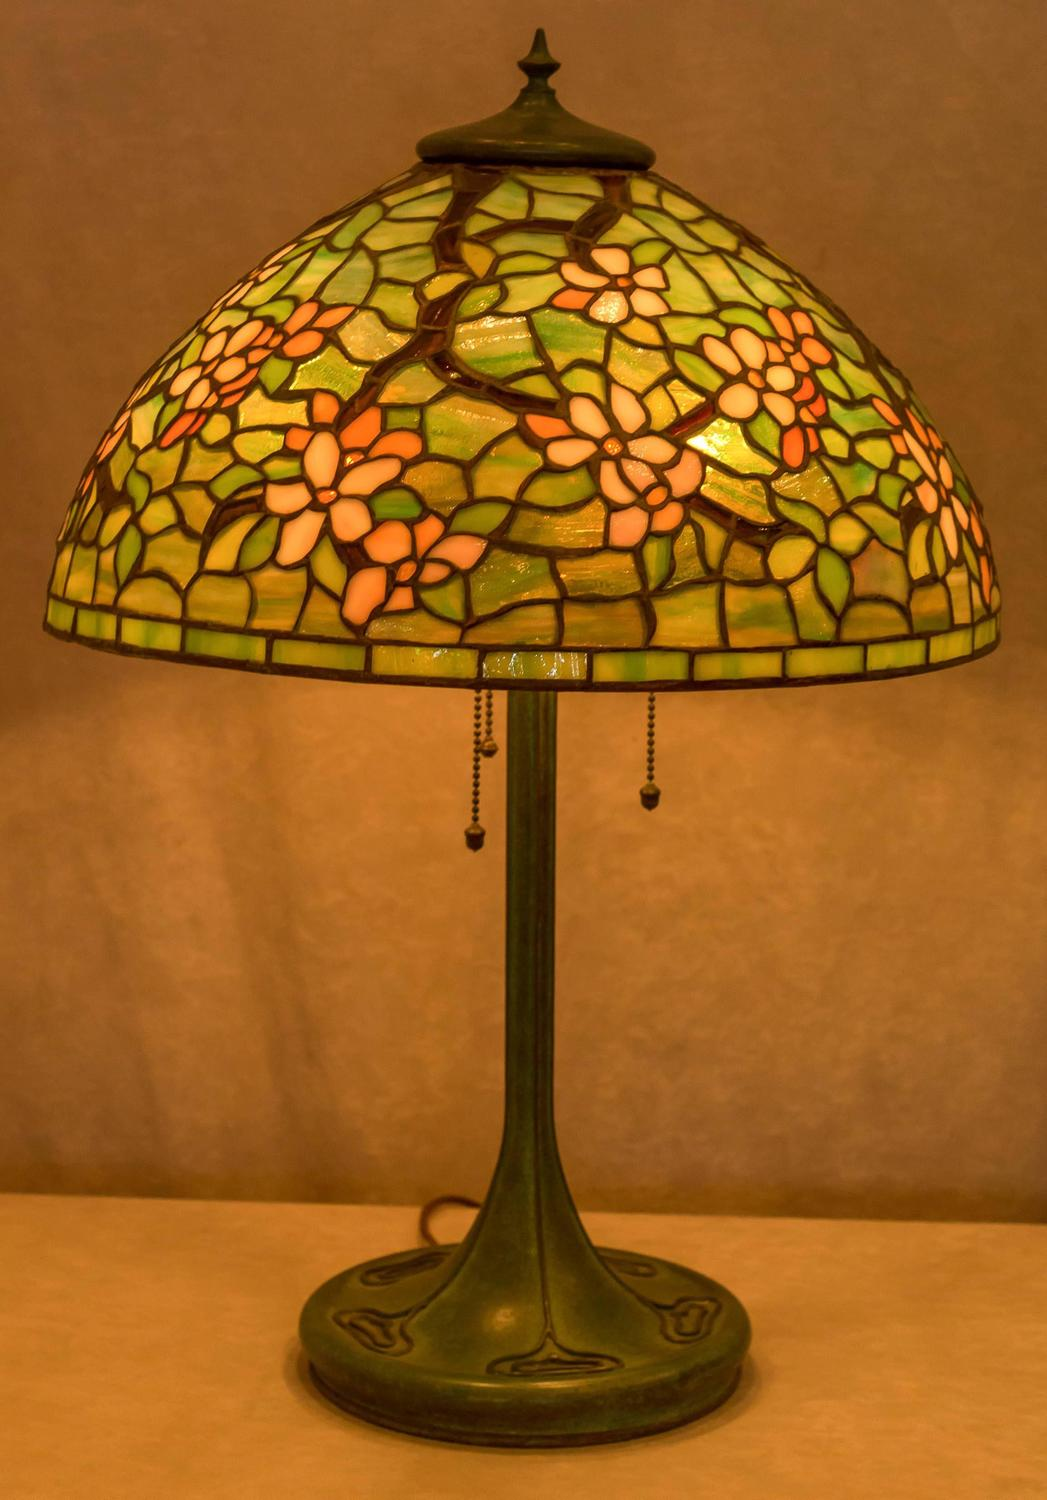 leaded glass table lamp by unique art glass co for sale at 1stdibs. Black Bedroom Furniture Sets. Home Design Ideas